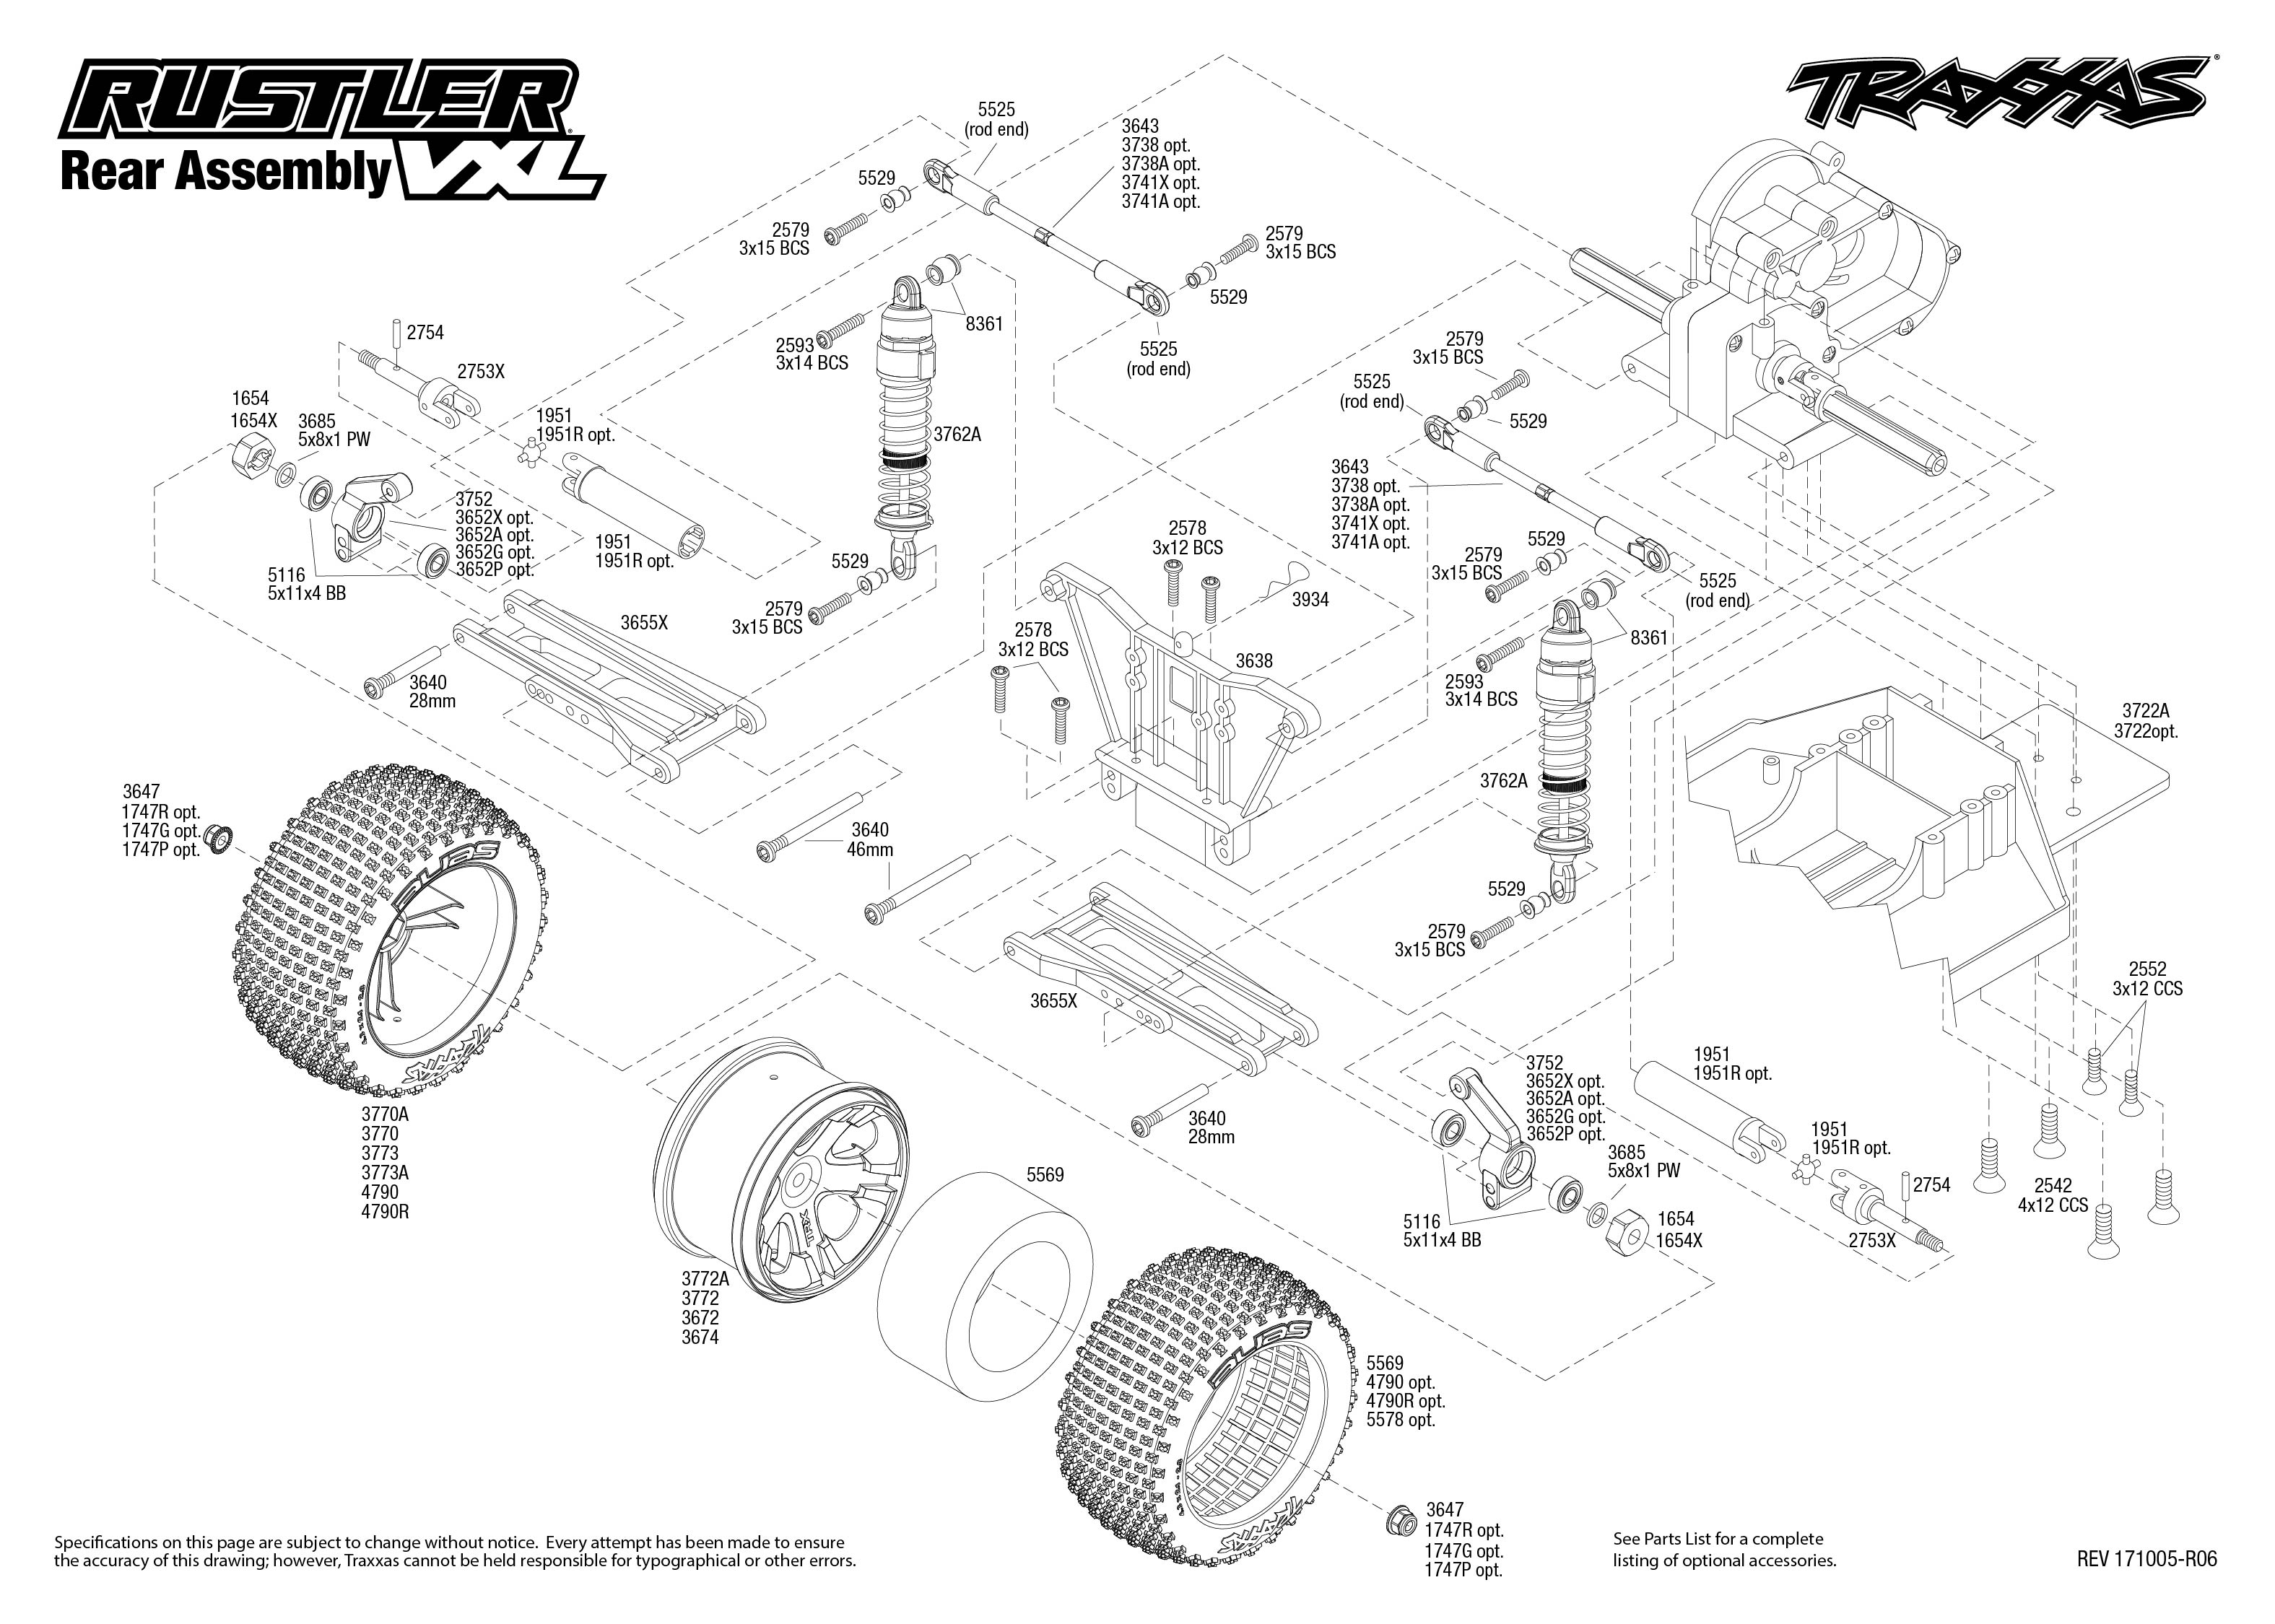 Rustler Vxl 37076 3 Rear Assembly Exploded View Traxxas